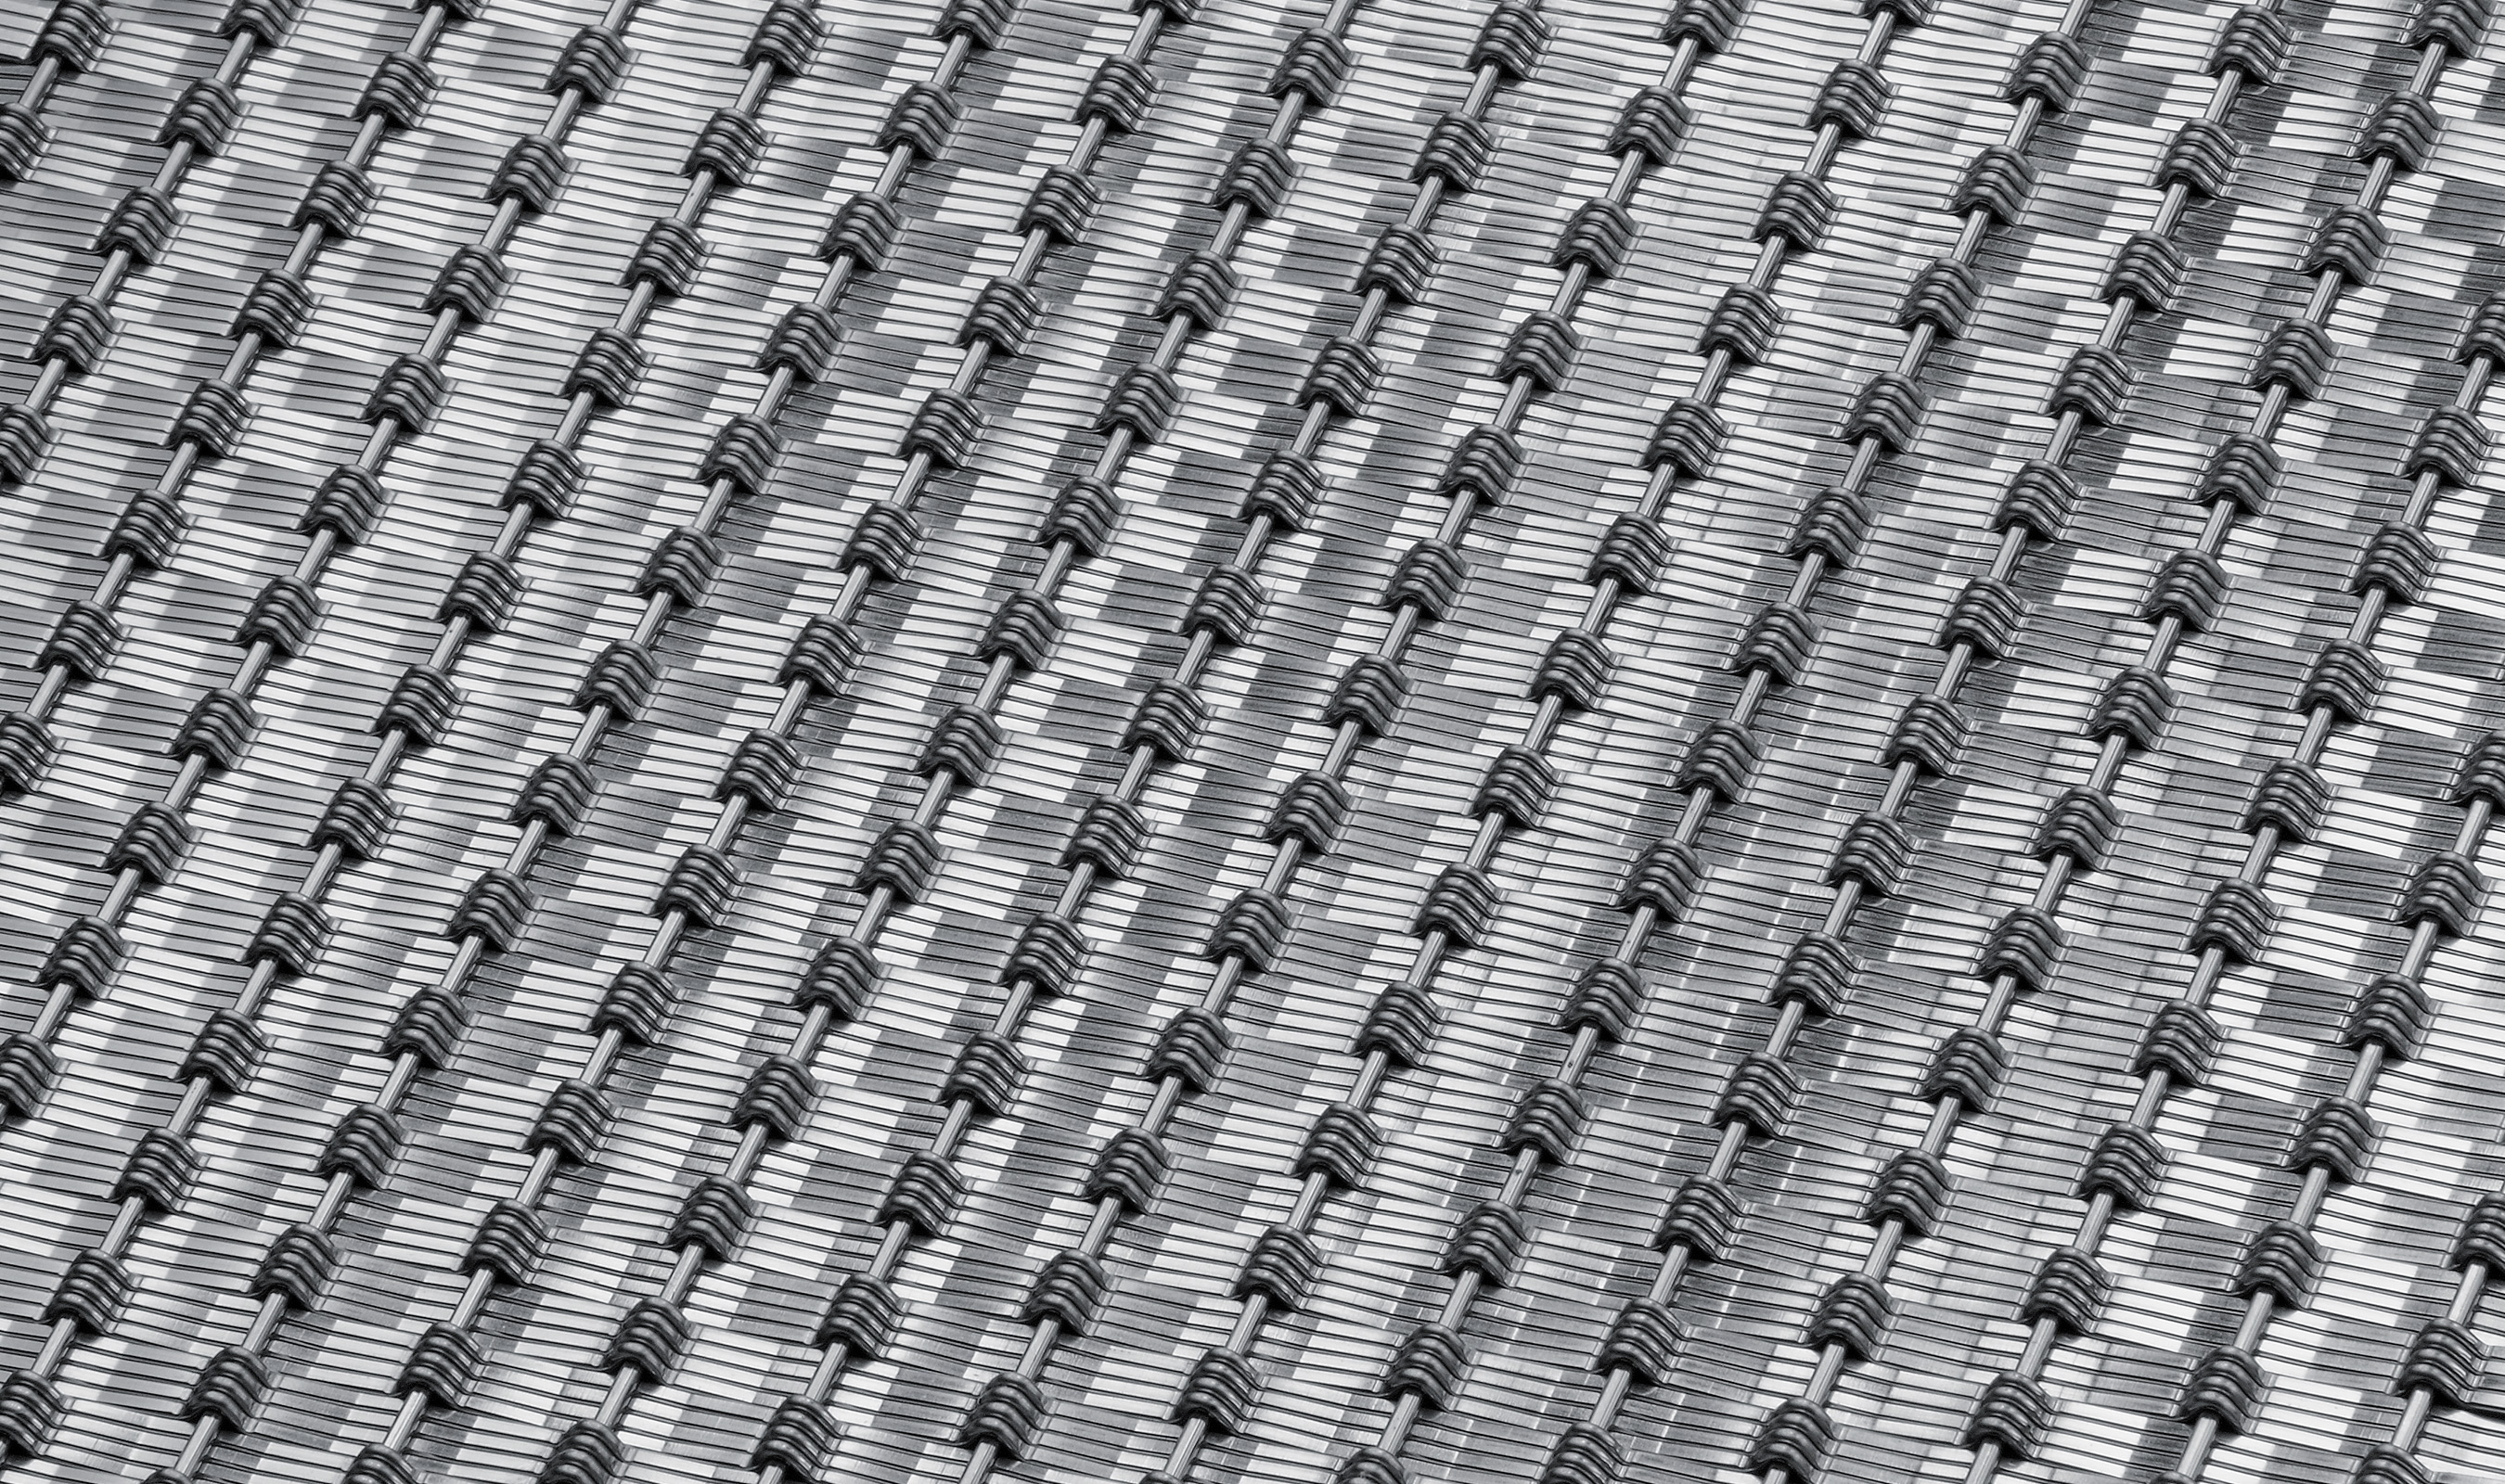 DF-8 Stainless metal mesh for wall panels backside image